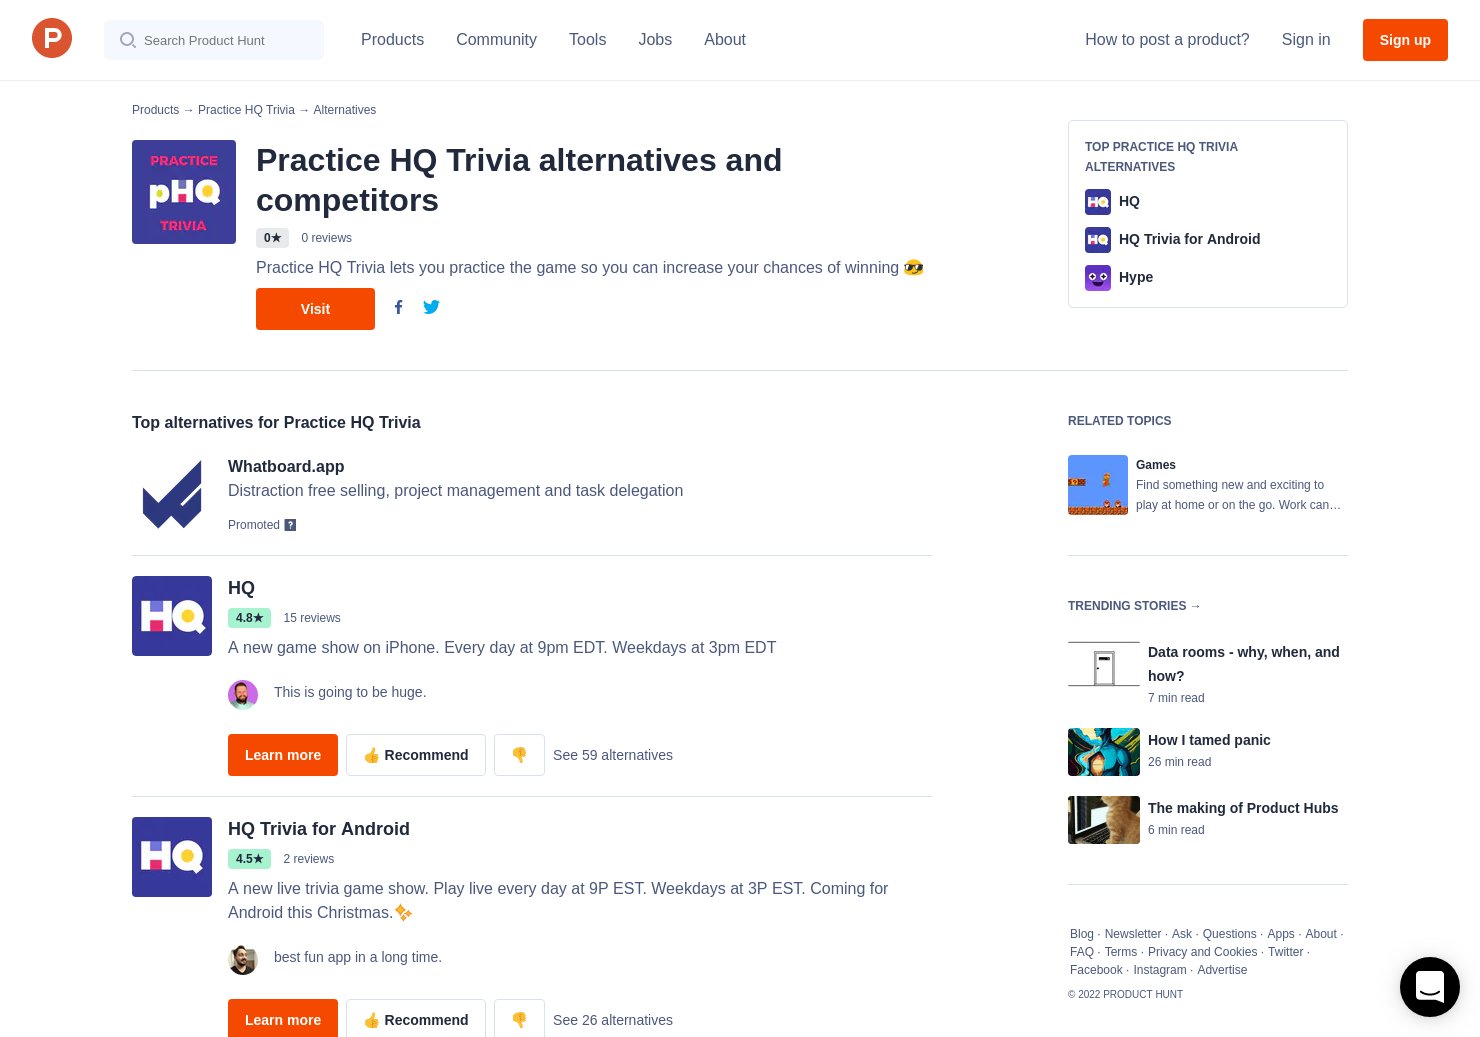 16 Alternatives to Practice HQ Trivia | Product Hunt